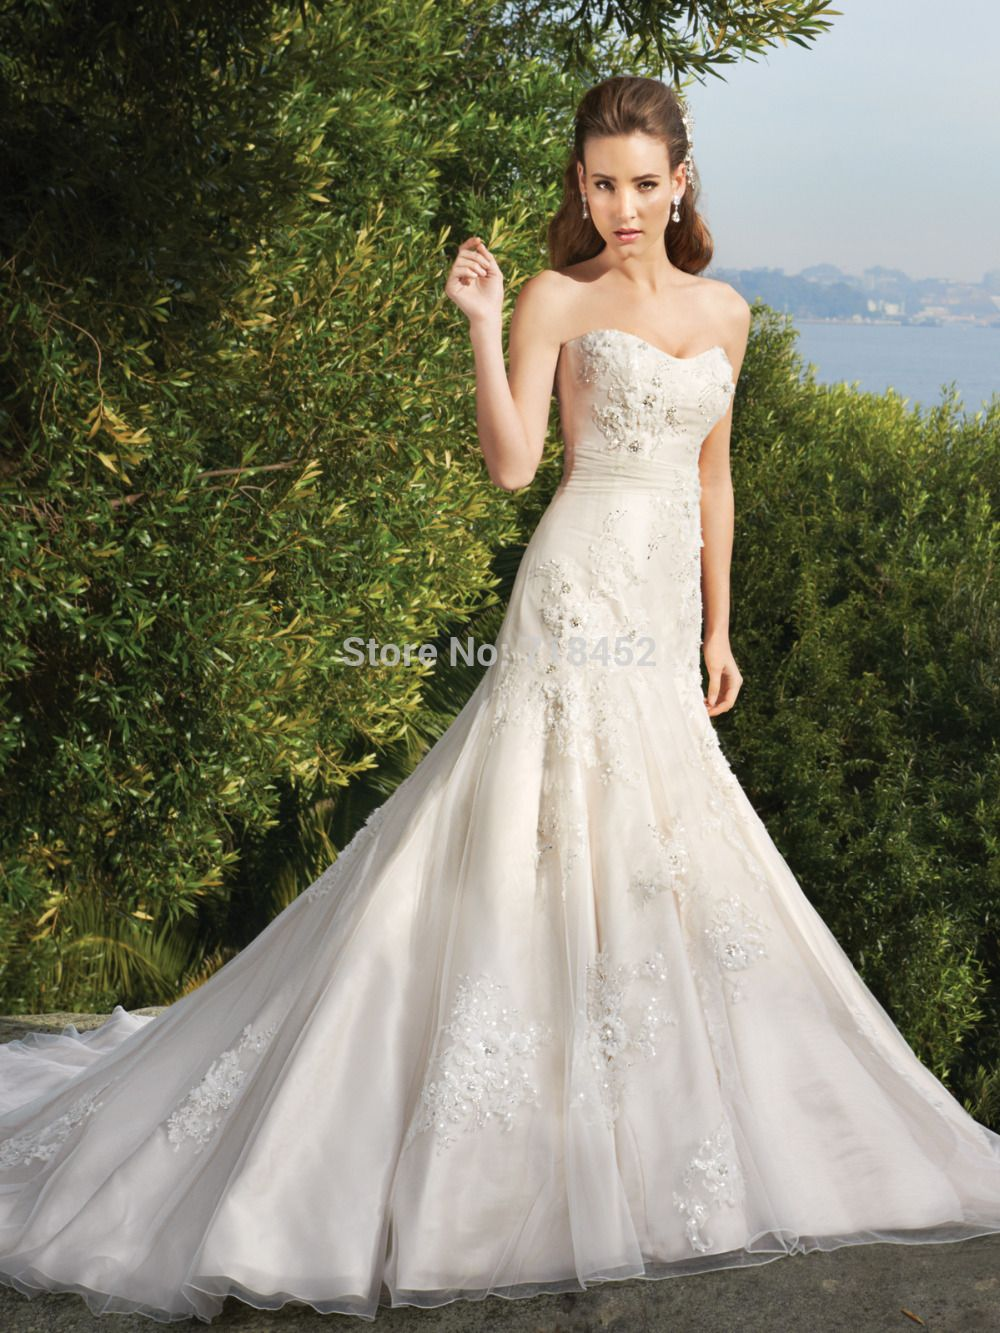 High fashion wedding dress  Click to Buy ucuc Appliques Beading Trumpet Wedding Dress Sweetheart